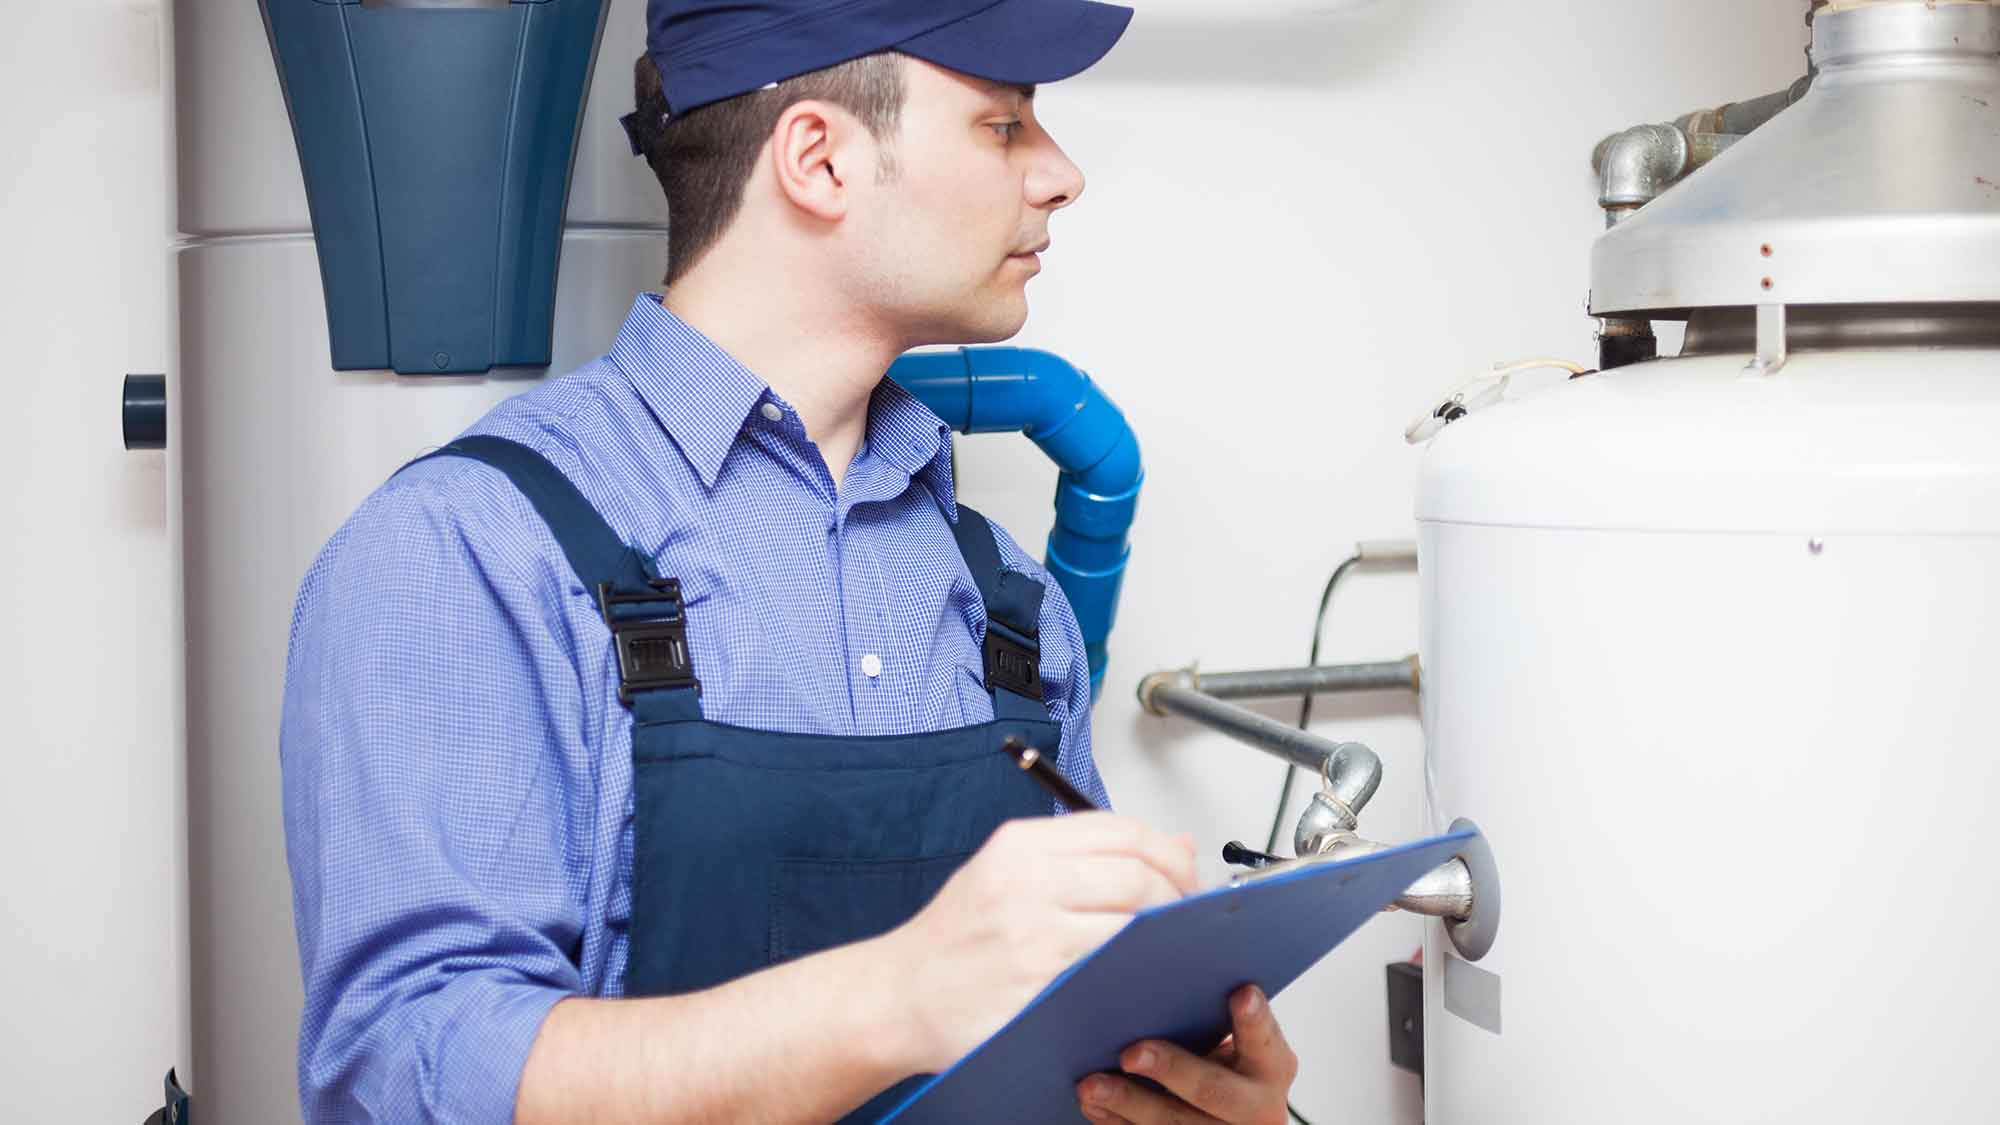 commercial gas safety certificate essex maintenance leigh on sea employee